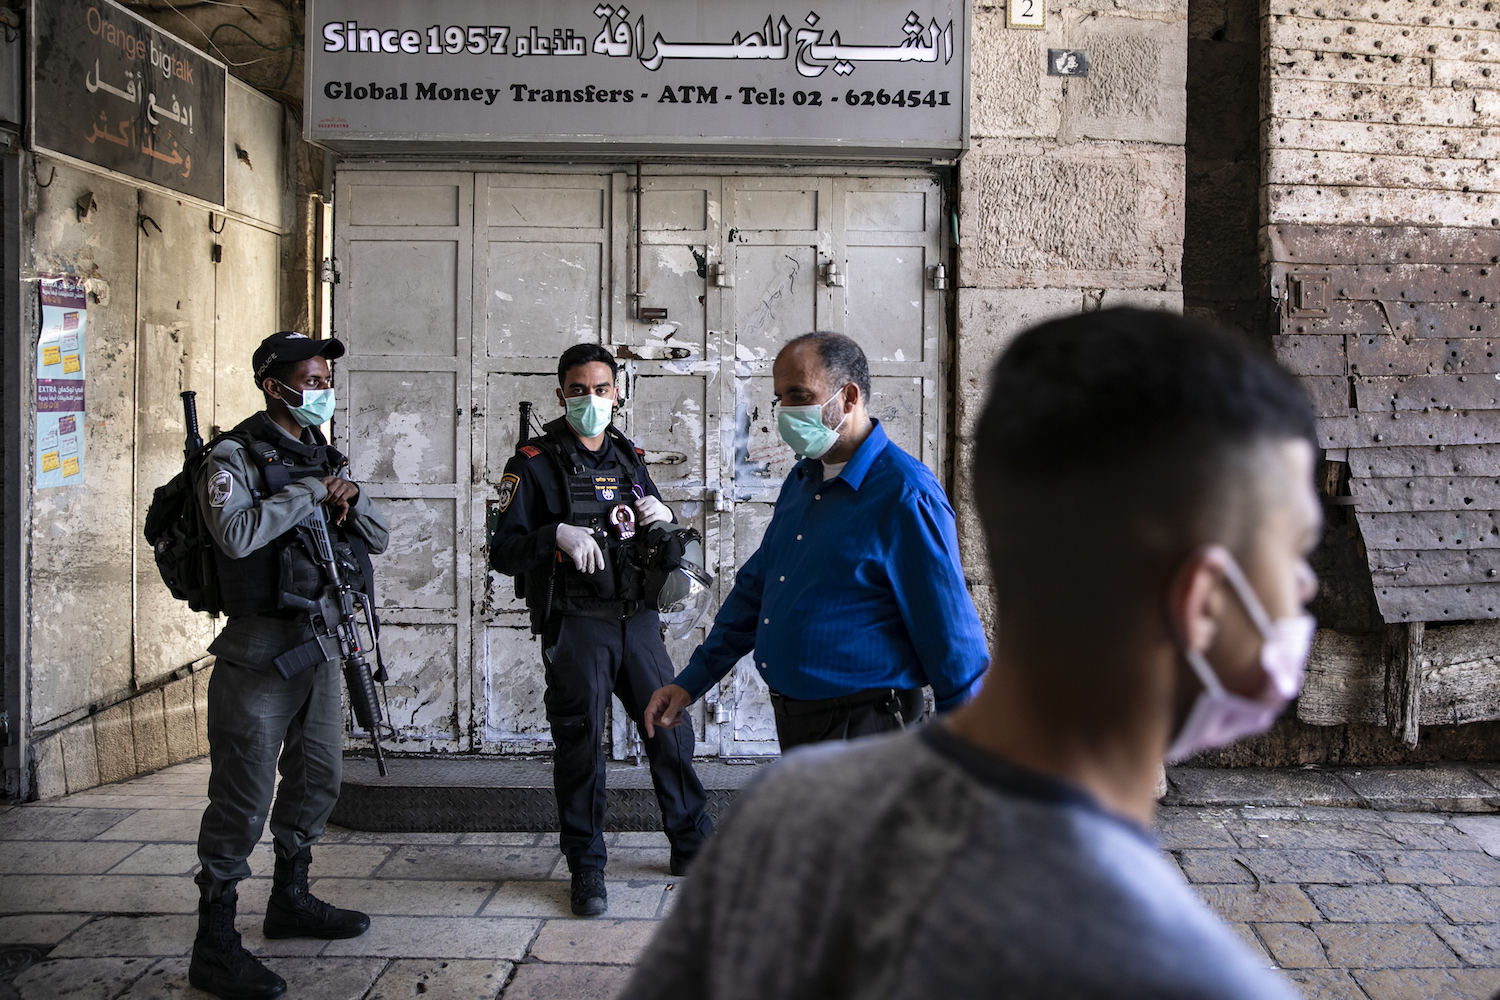 Palestinians and Israeli police officers in the Old city of Jerusalem, April 4, 2020. (Olivier Fitoussi/Flash90)